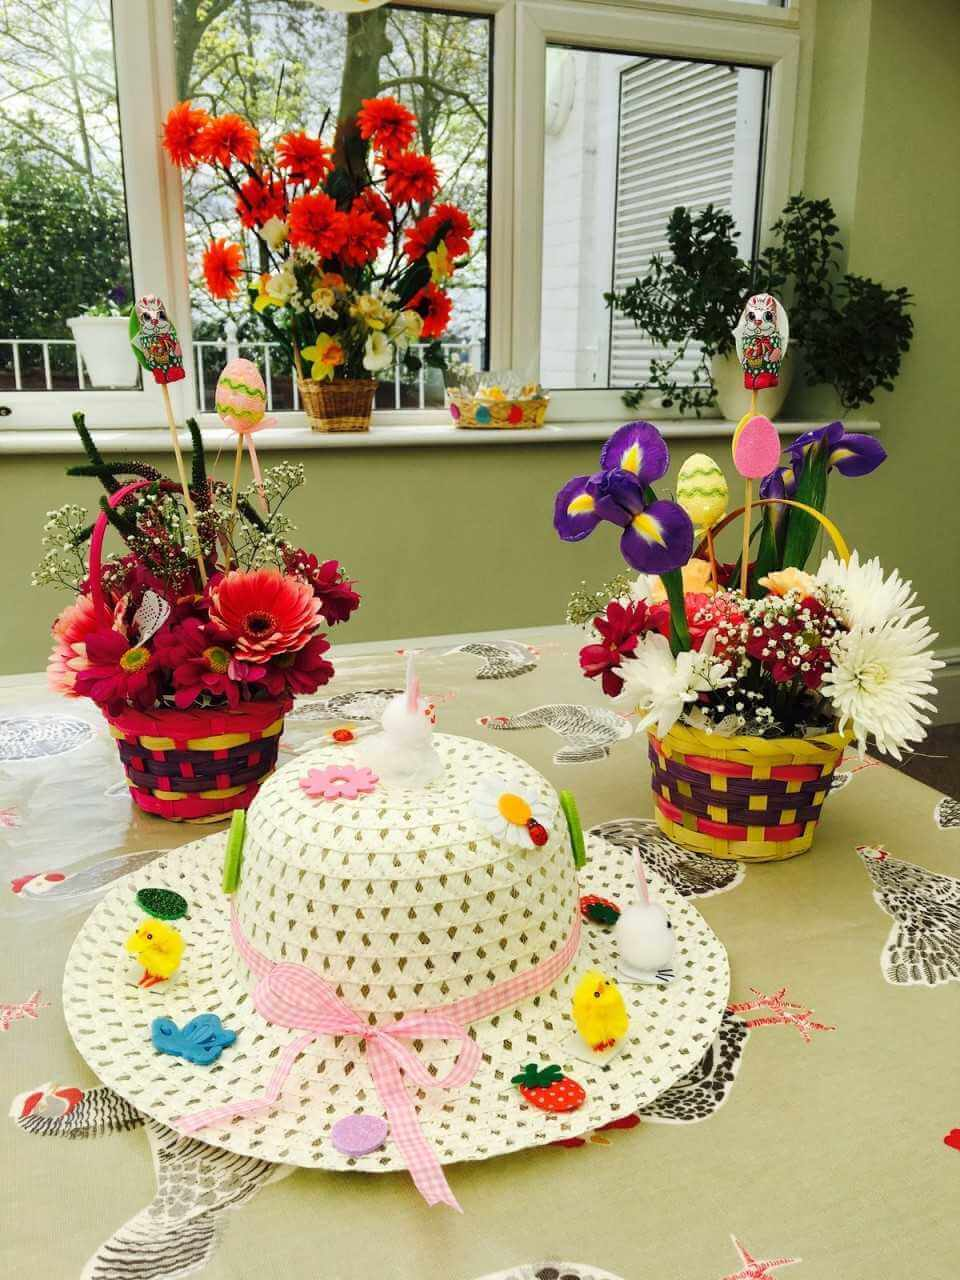 Crafts for the elderly in nursing homes - Easter Crafts